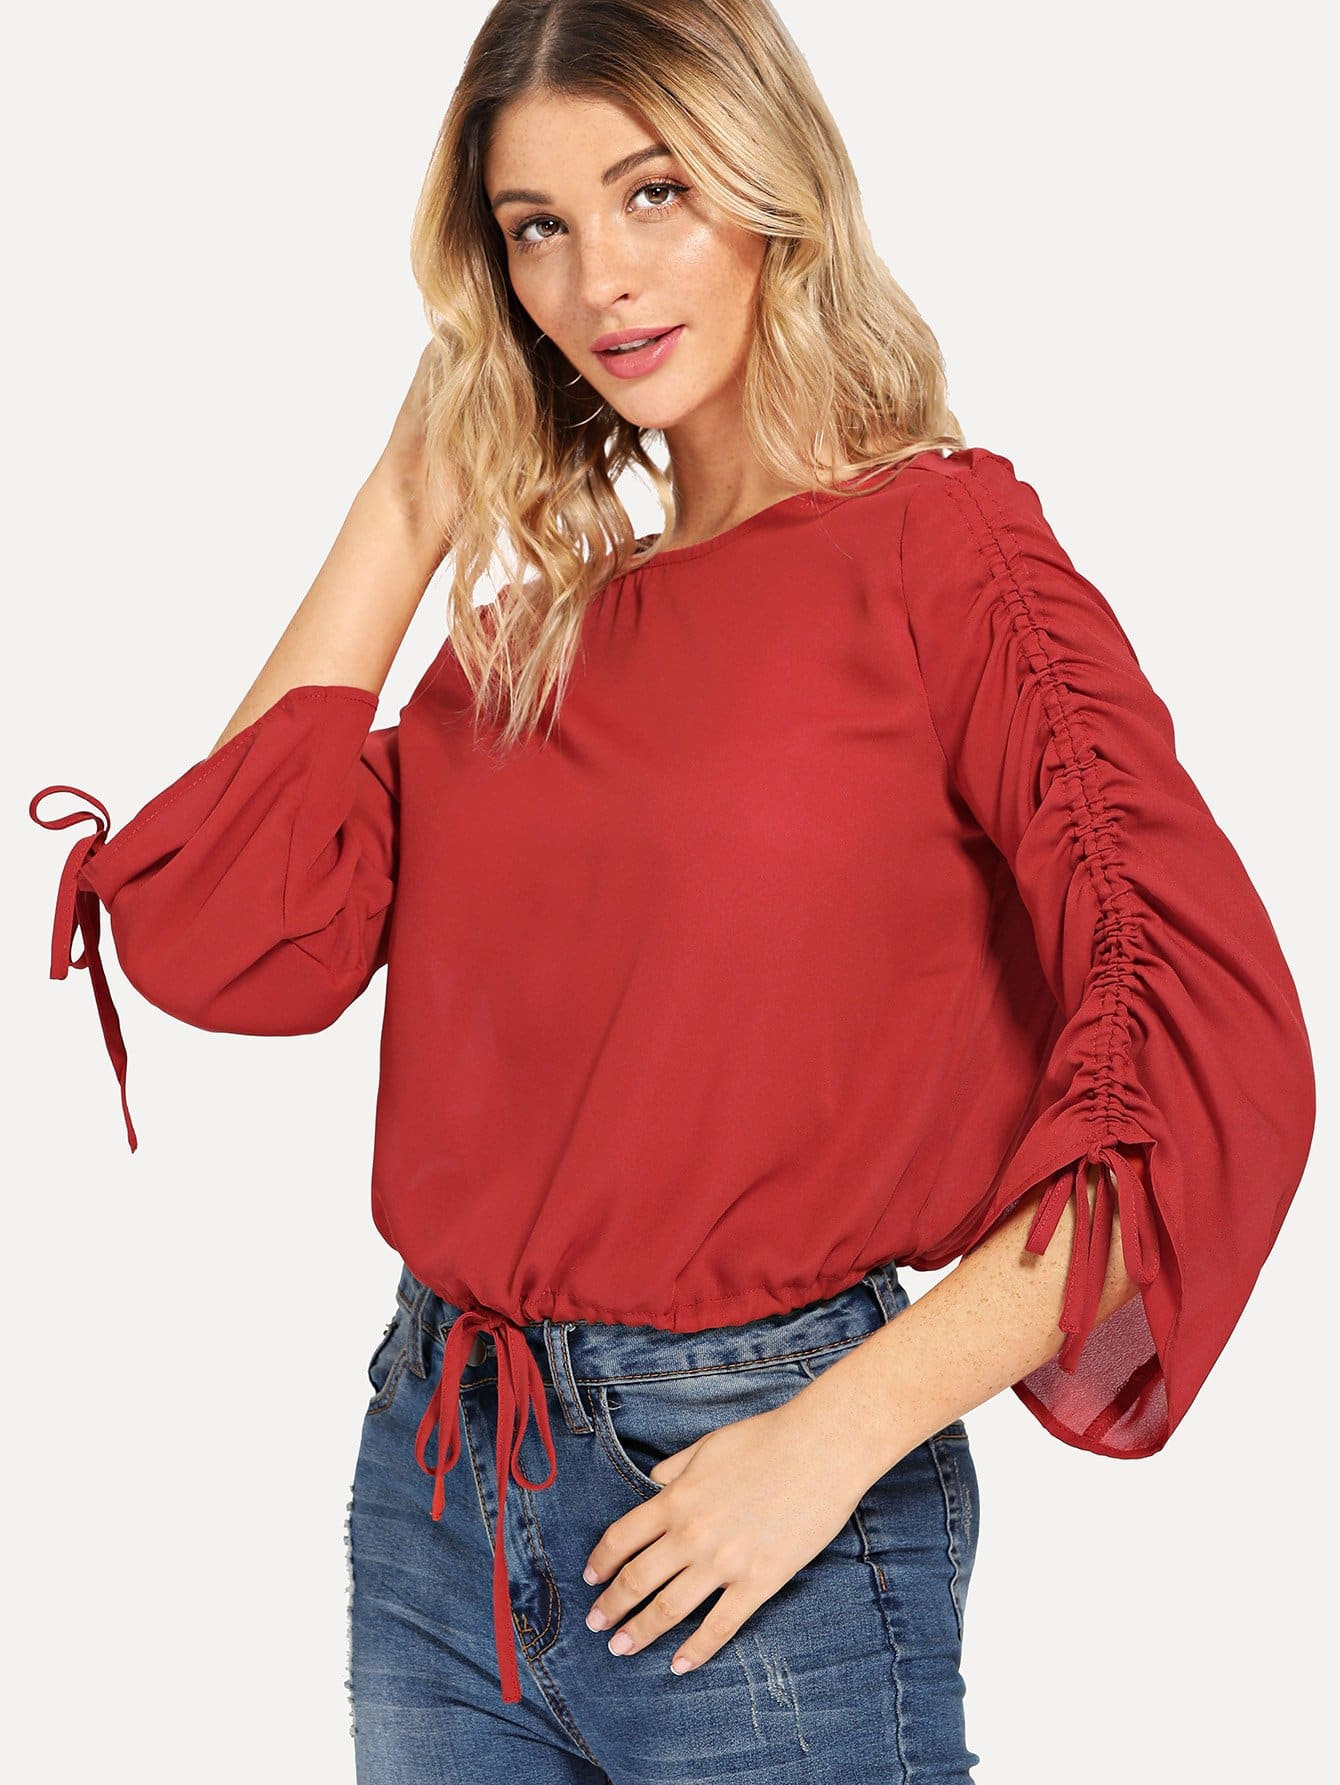 Drawstring Waist Knot Solid Top